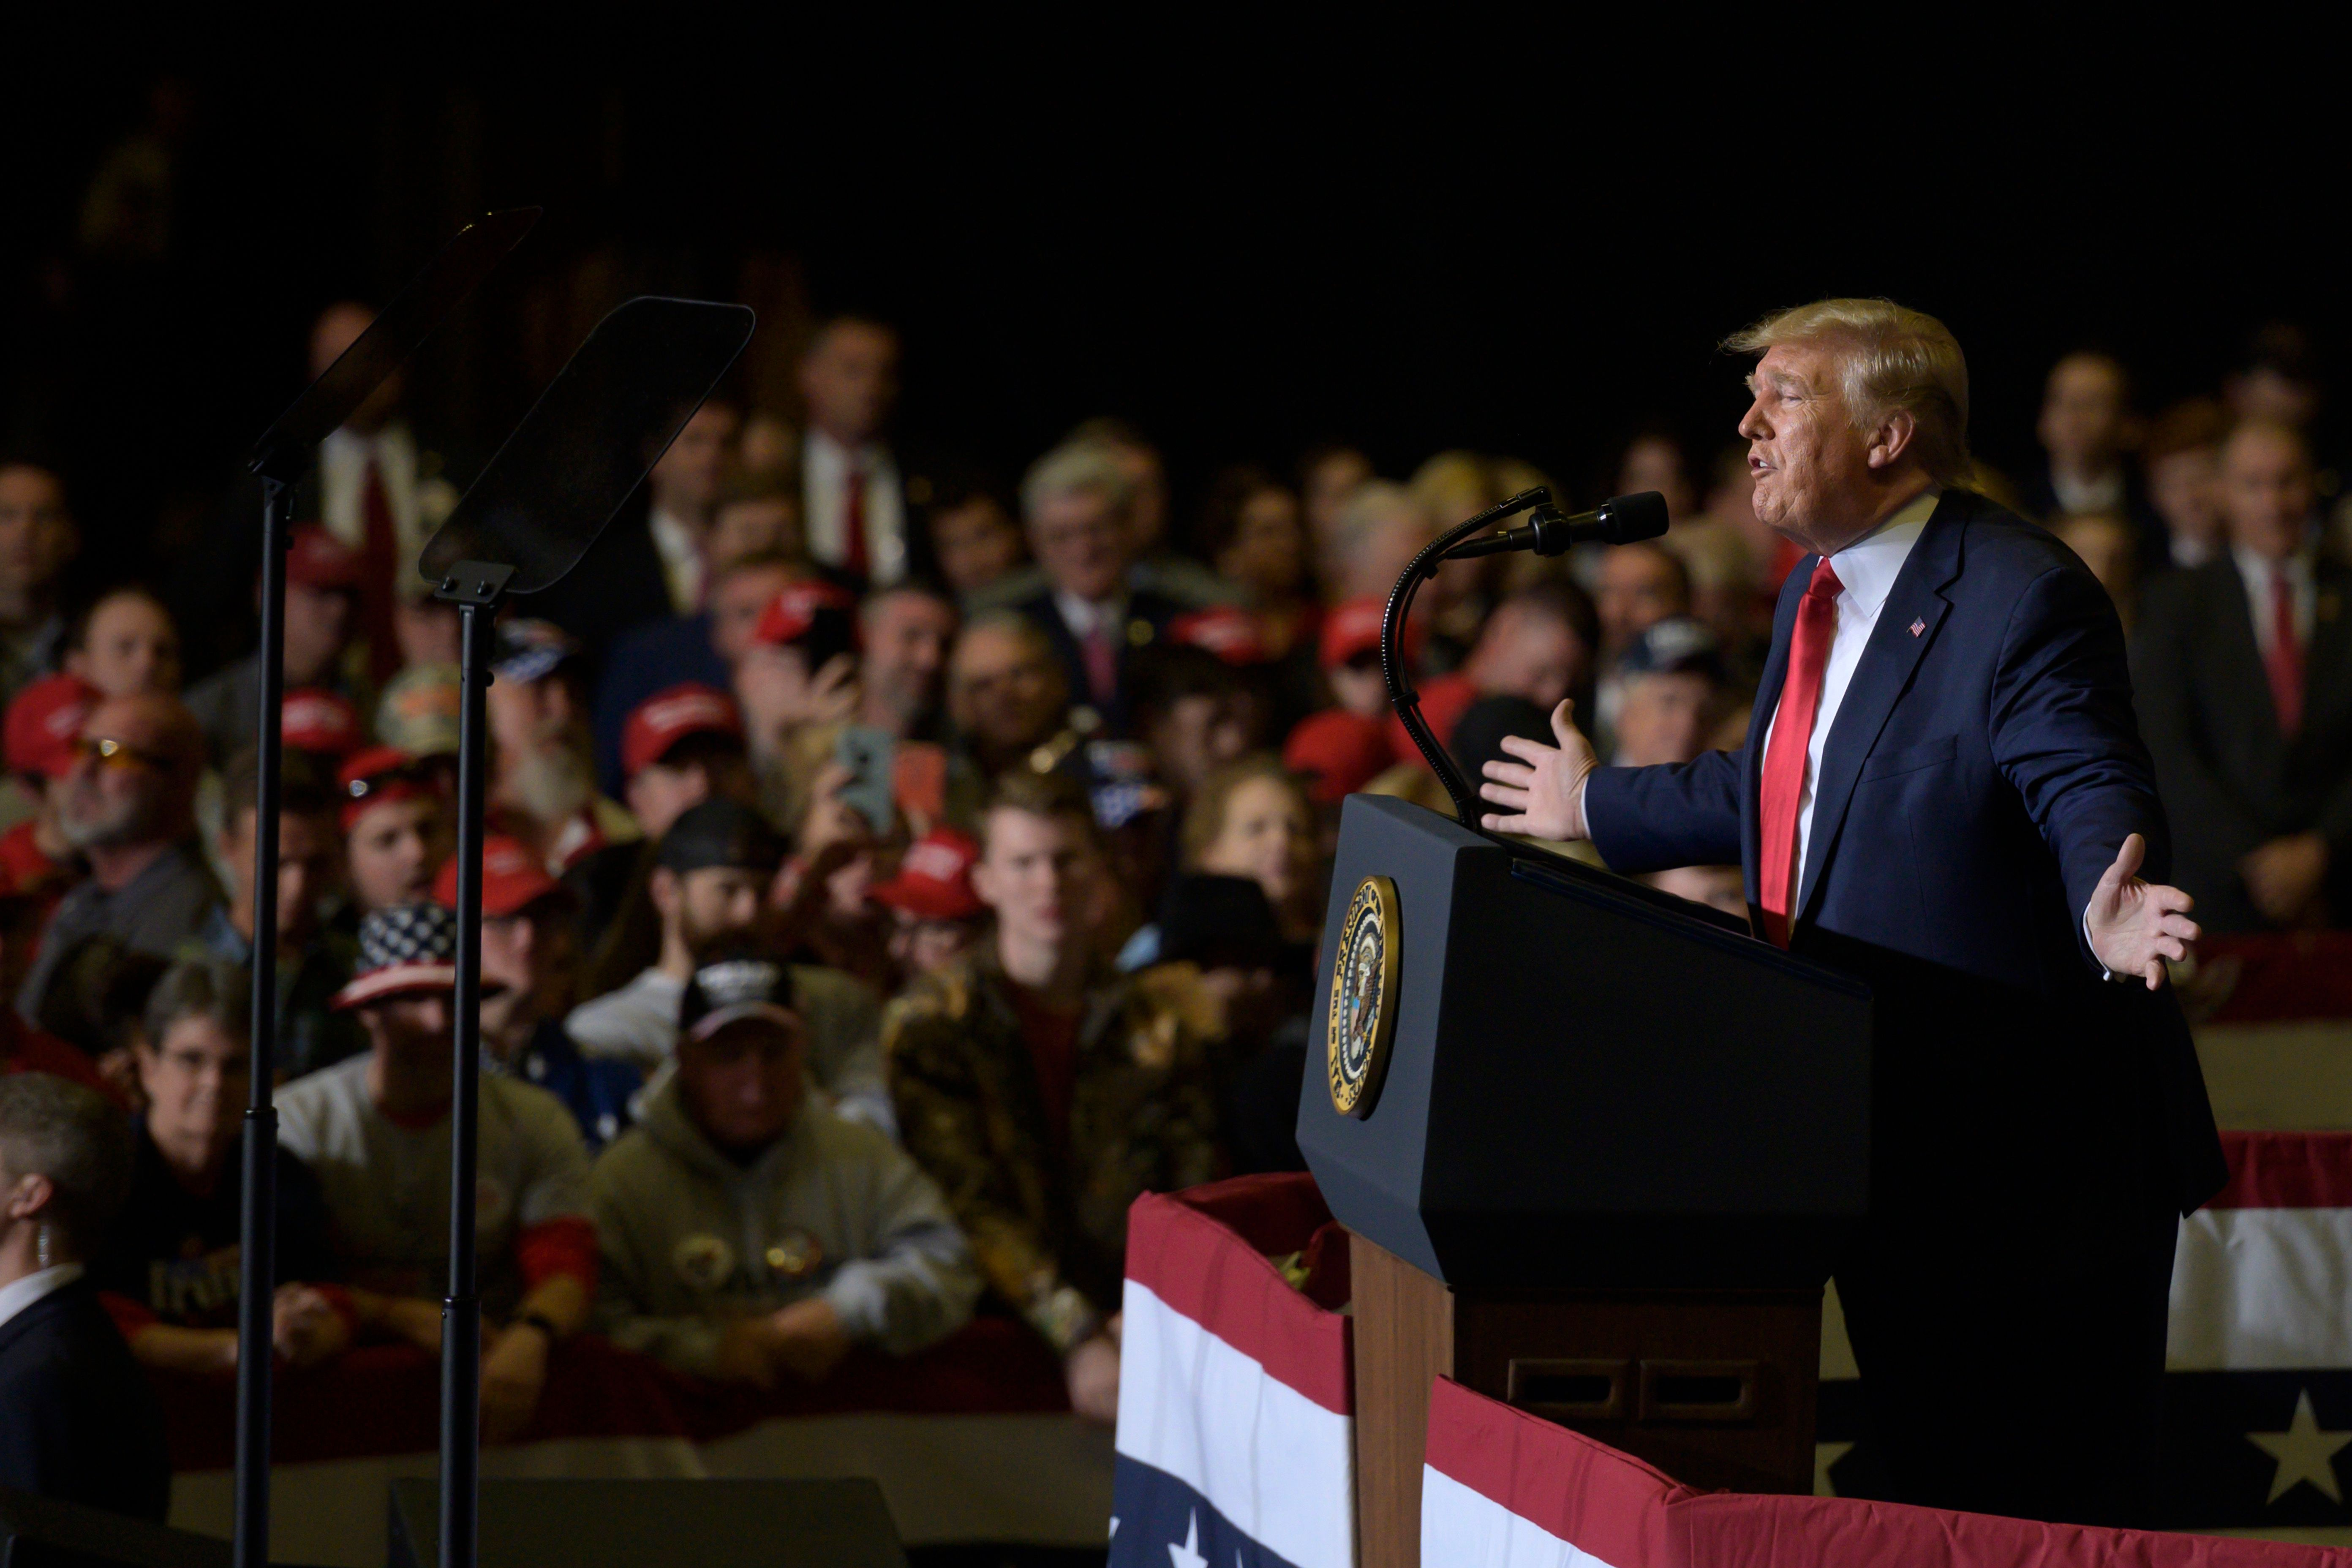 President Trump delivers remarks during a campaign rally in Tupelo, Mississippi, on Nov. 1.